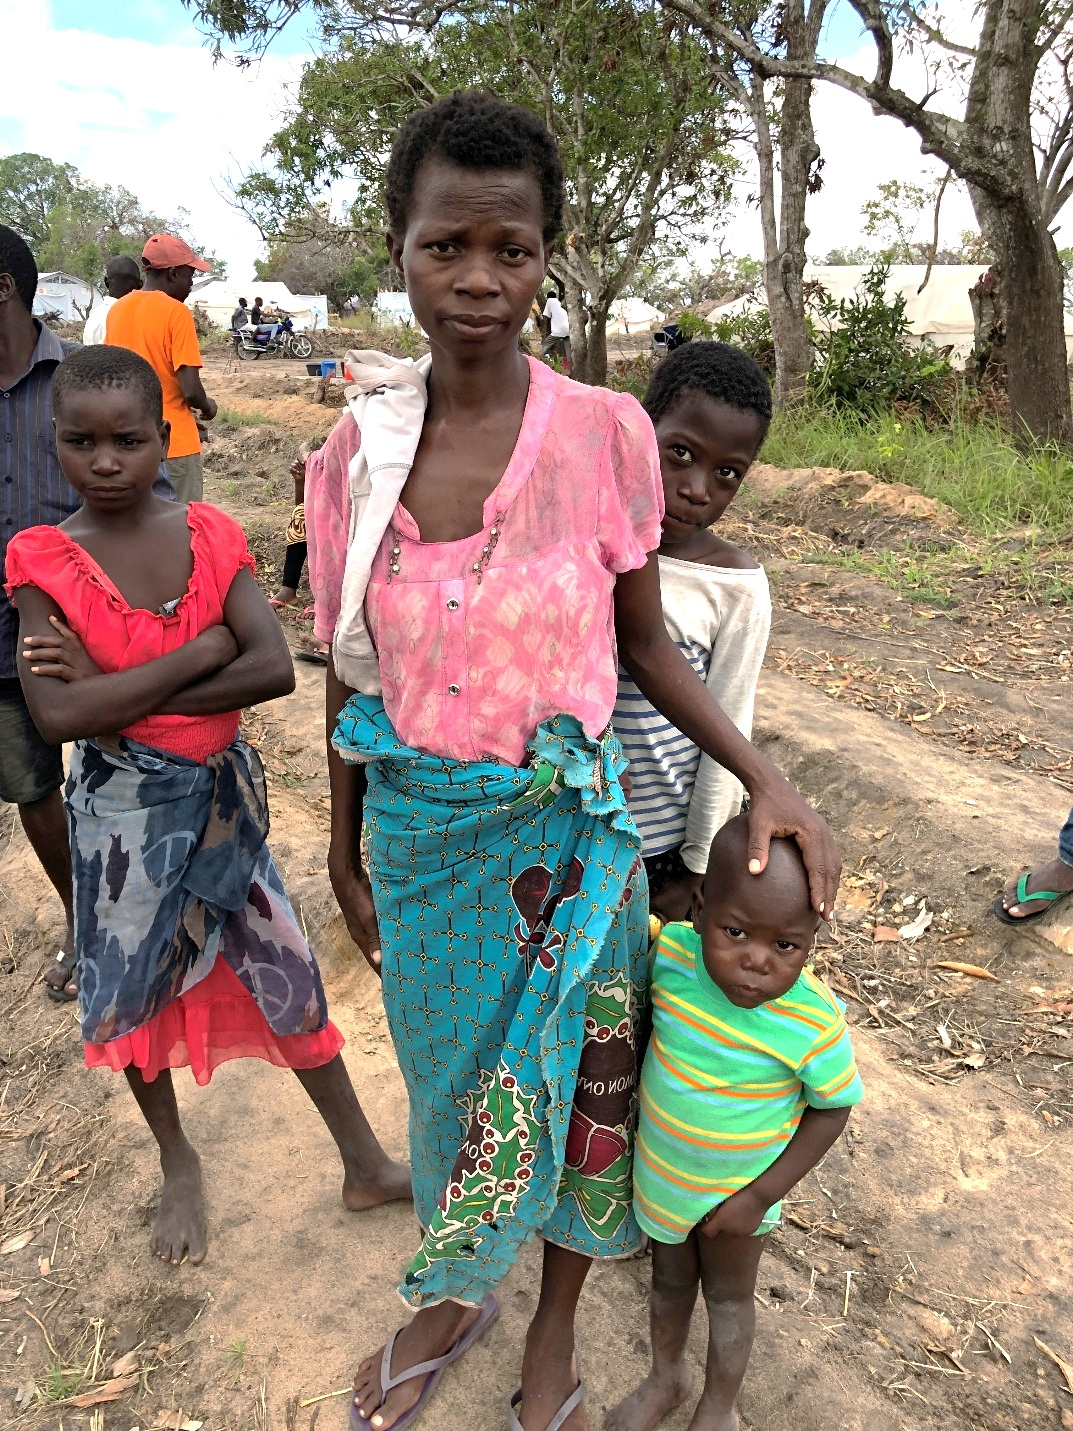 During Cyclone Idai, this woman was separated from her husband and climbed up a tree with her children to avoid the floodwaters. She assumes that her husband died, but she never saw his body. She explained that people are traumatized and fear that a storm like Idai will happen again.